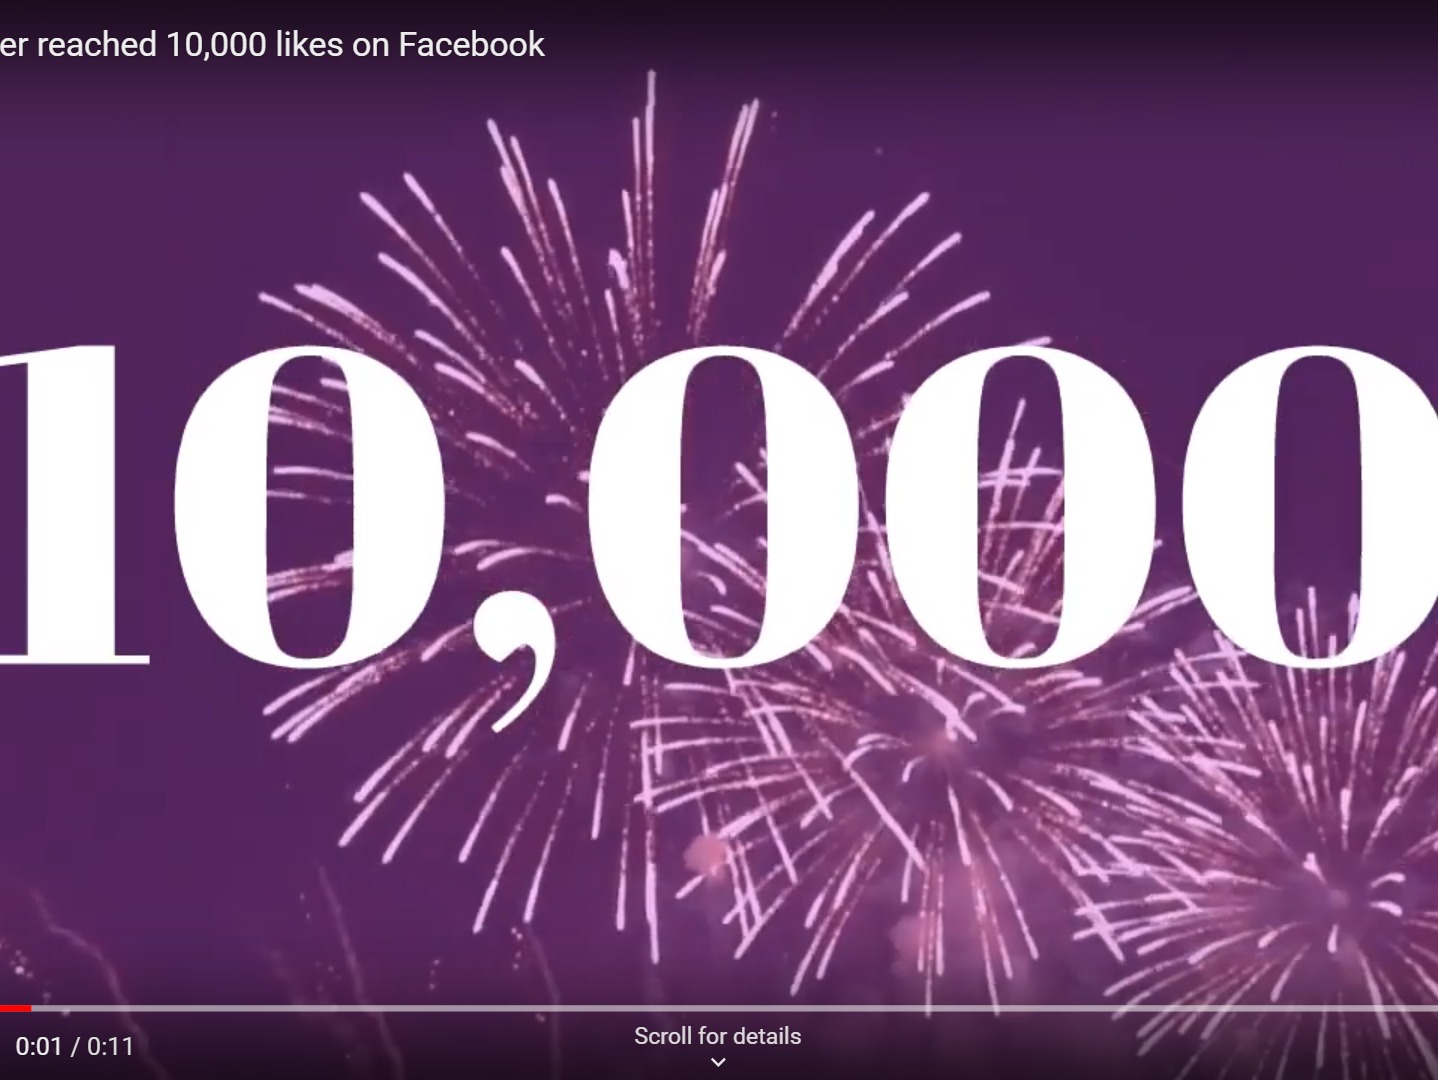 Facebook 10,000 likes reached